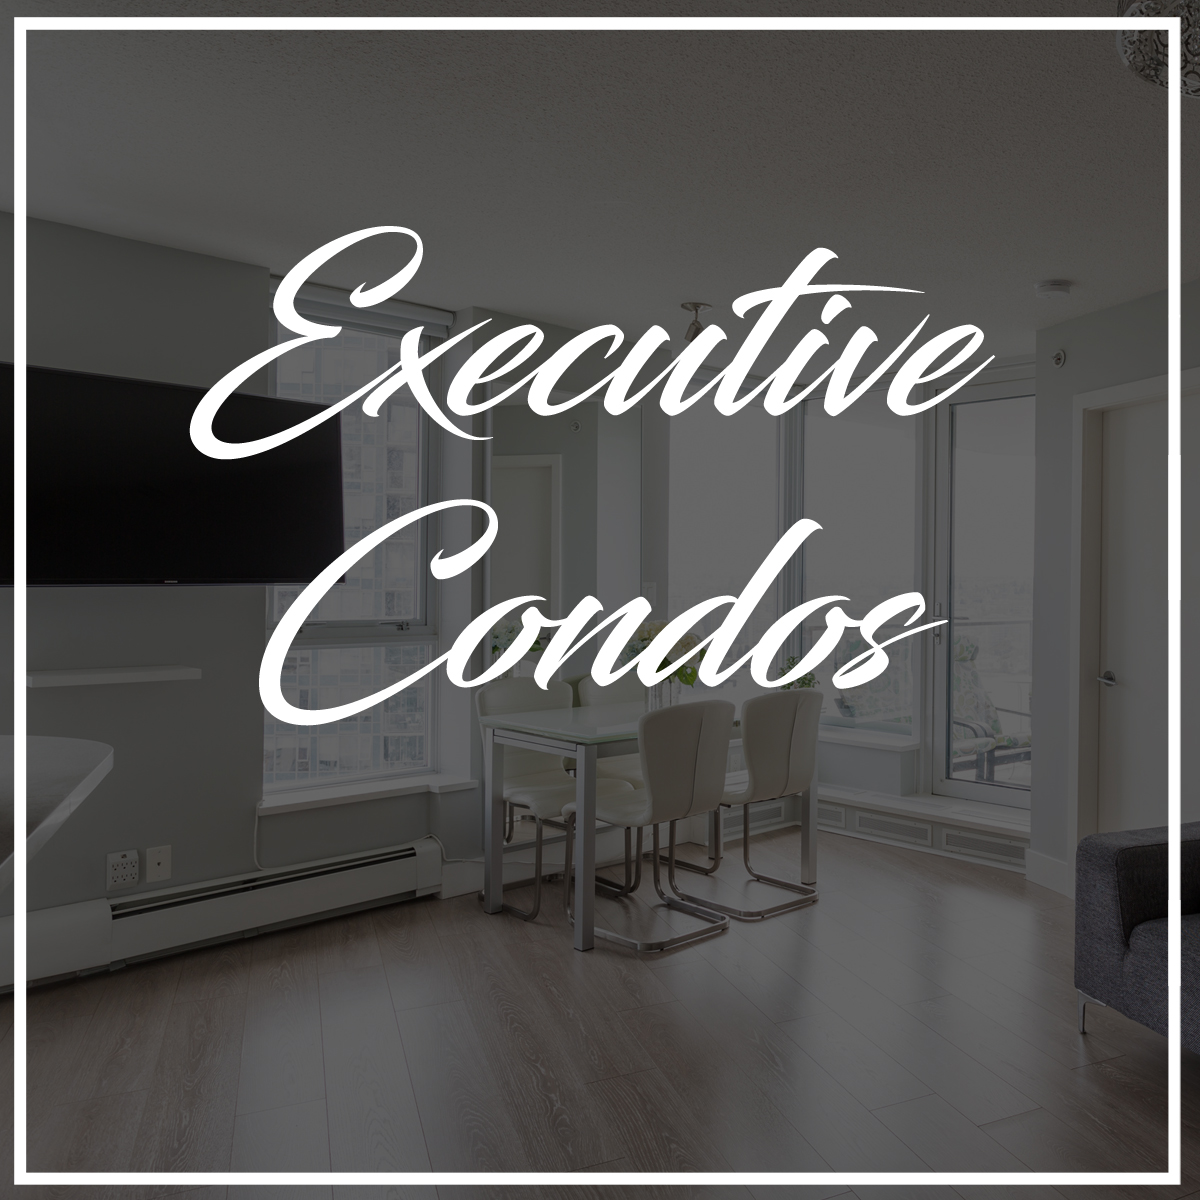 View Executive Condos for Rent in the Twin Cities